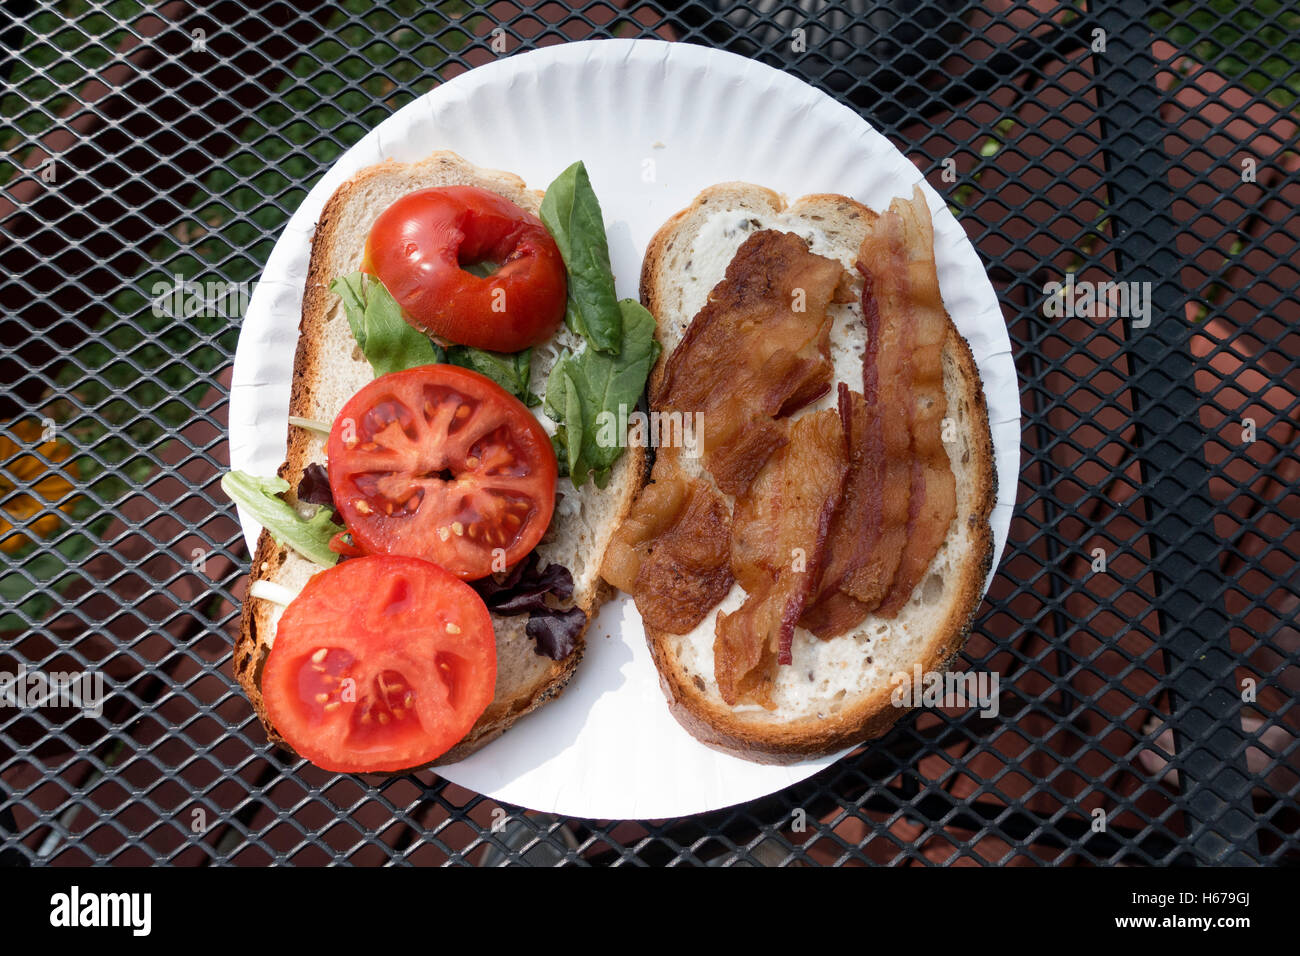 Bacon, lettuce and tomato BLT sandwich open faced, served outside on a open lattice table. Clitherall Minnesota - Stock Image